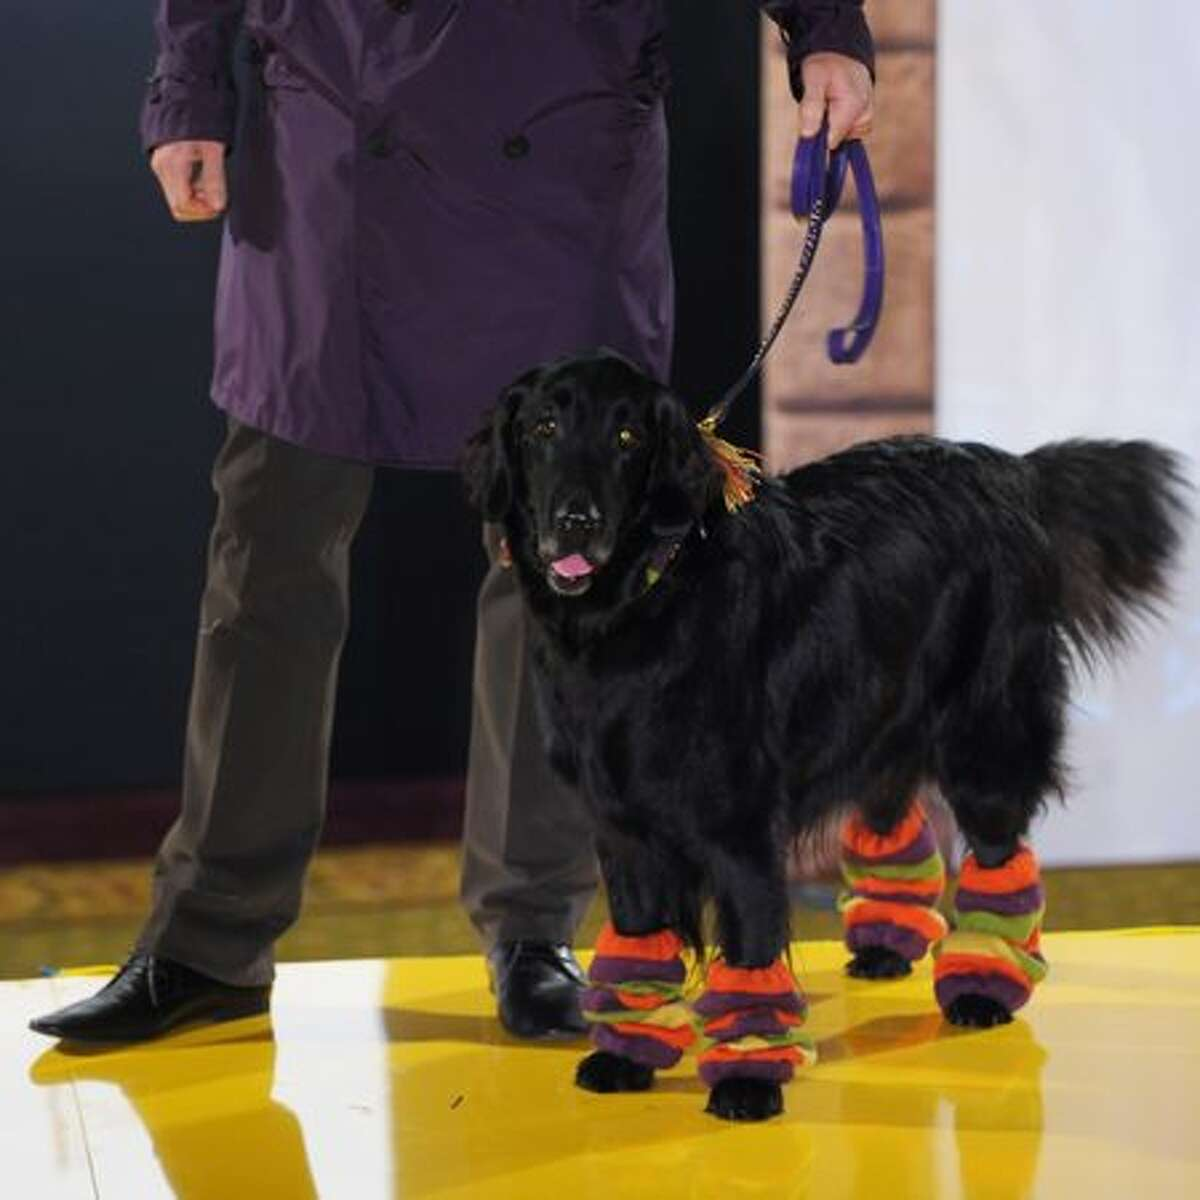 A model walks down the catwalk with a dog during the annual 'Pet-a-Porter' pet fashion show at Harrods in London, England.